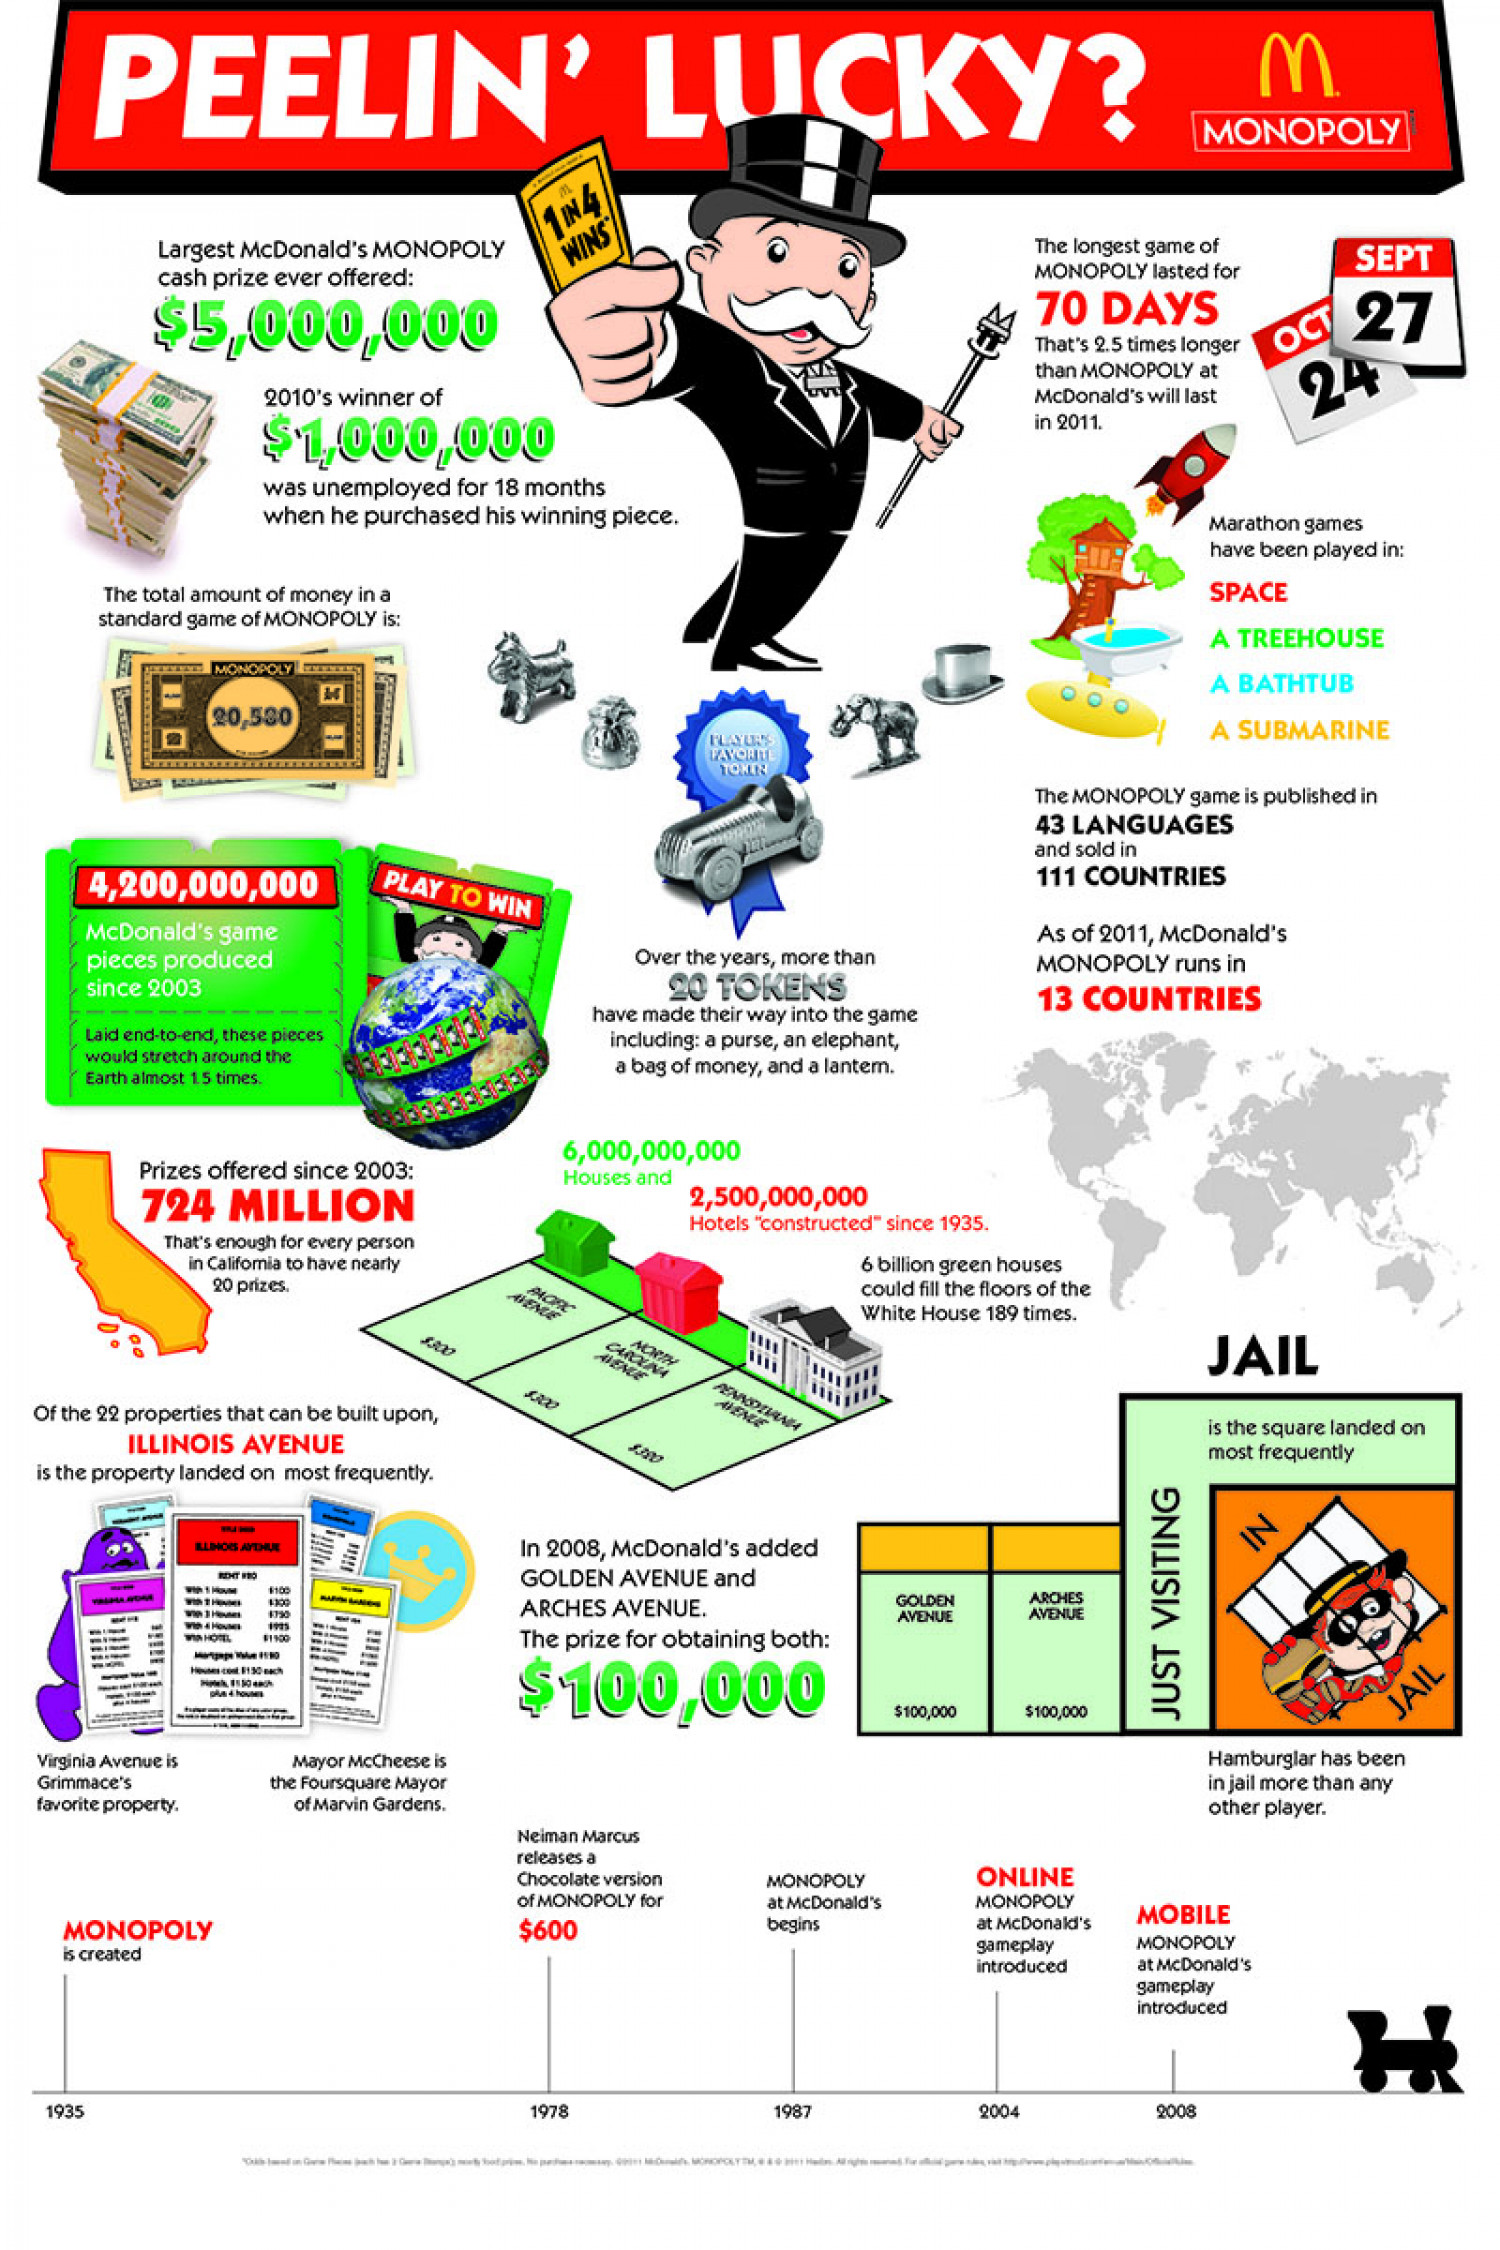 13 Things You Might Not Know About McDonald's Monopoly | Mental Floss